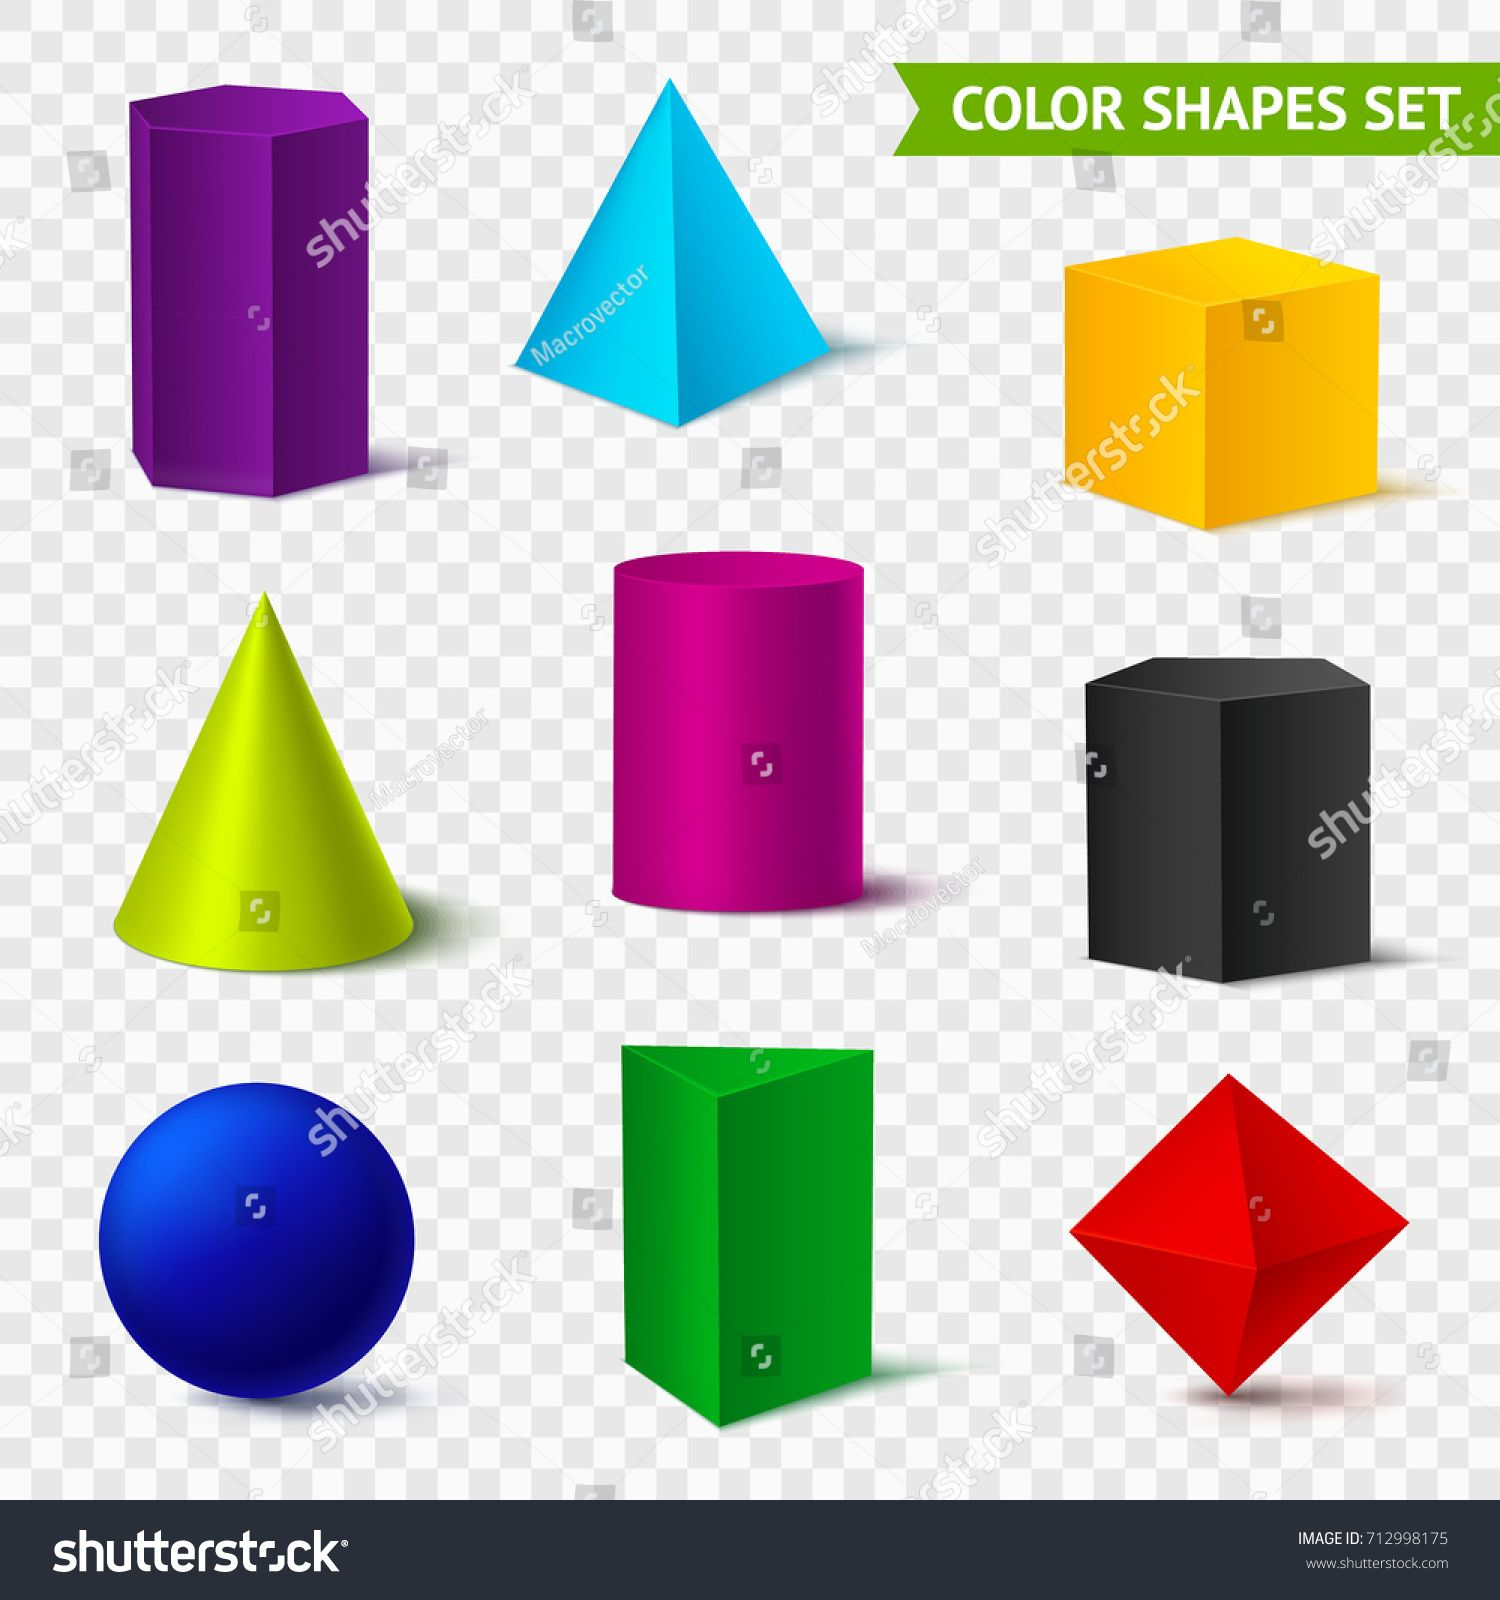 Realistic Geometric Shapes Transparent Color Set With Isolated